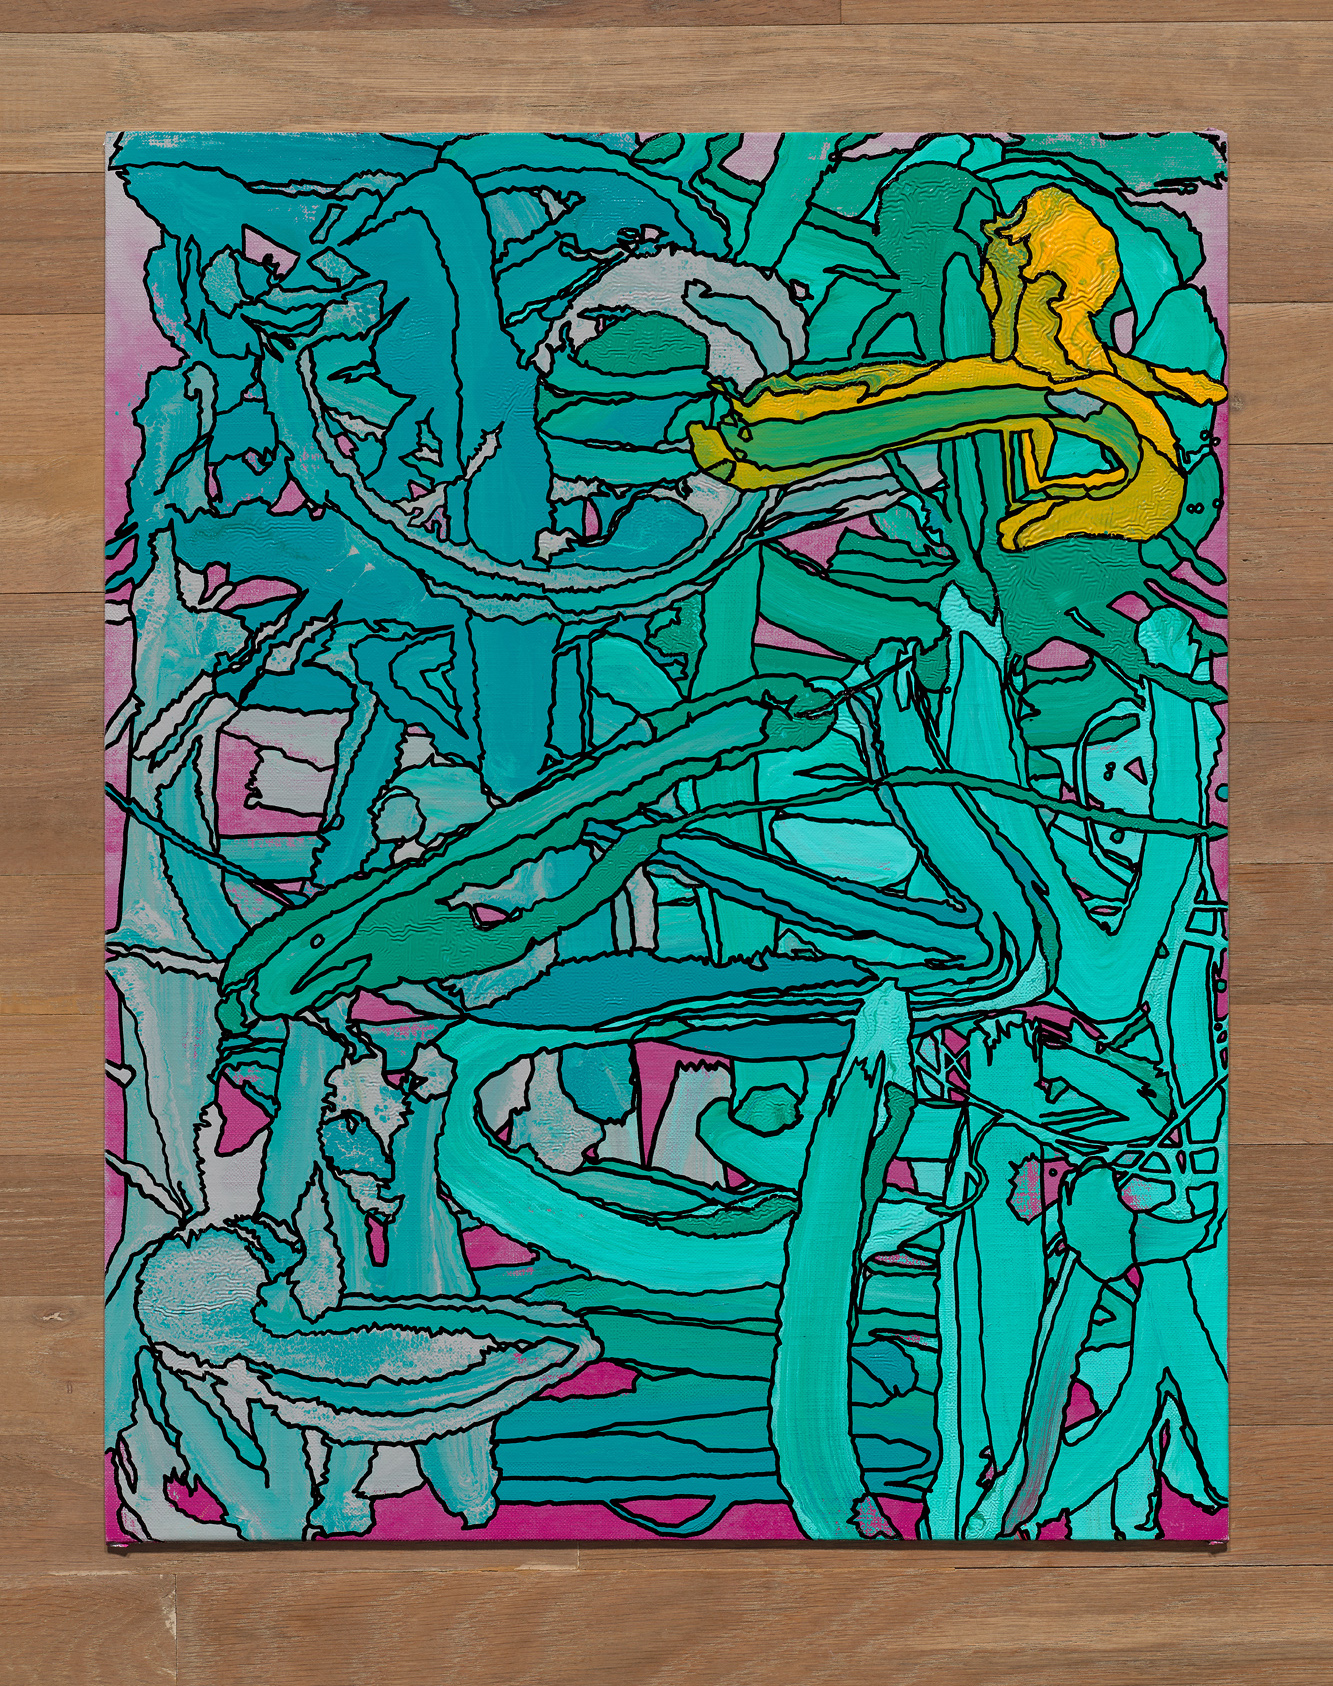 Tom Mueske, 20 x 16 inches, oil paint and marker on canvas covered board, 2019